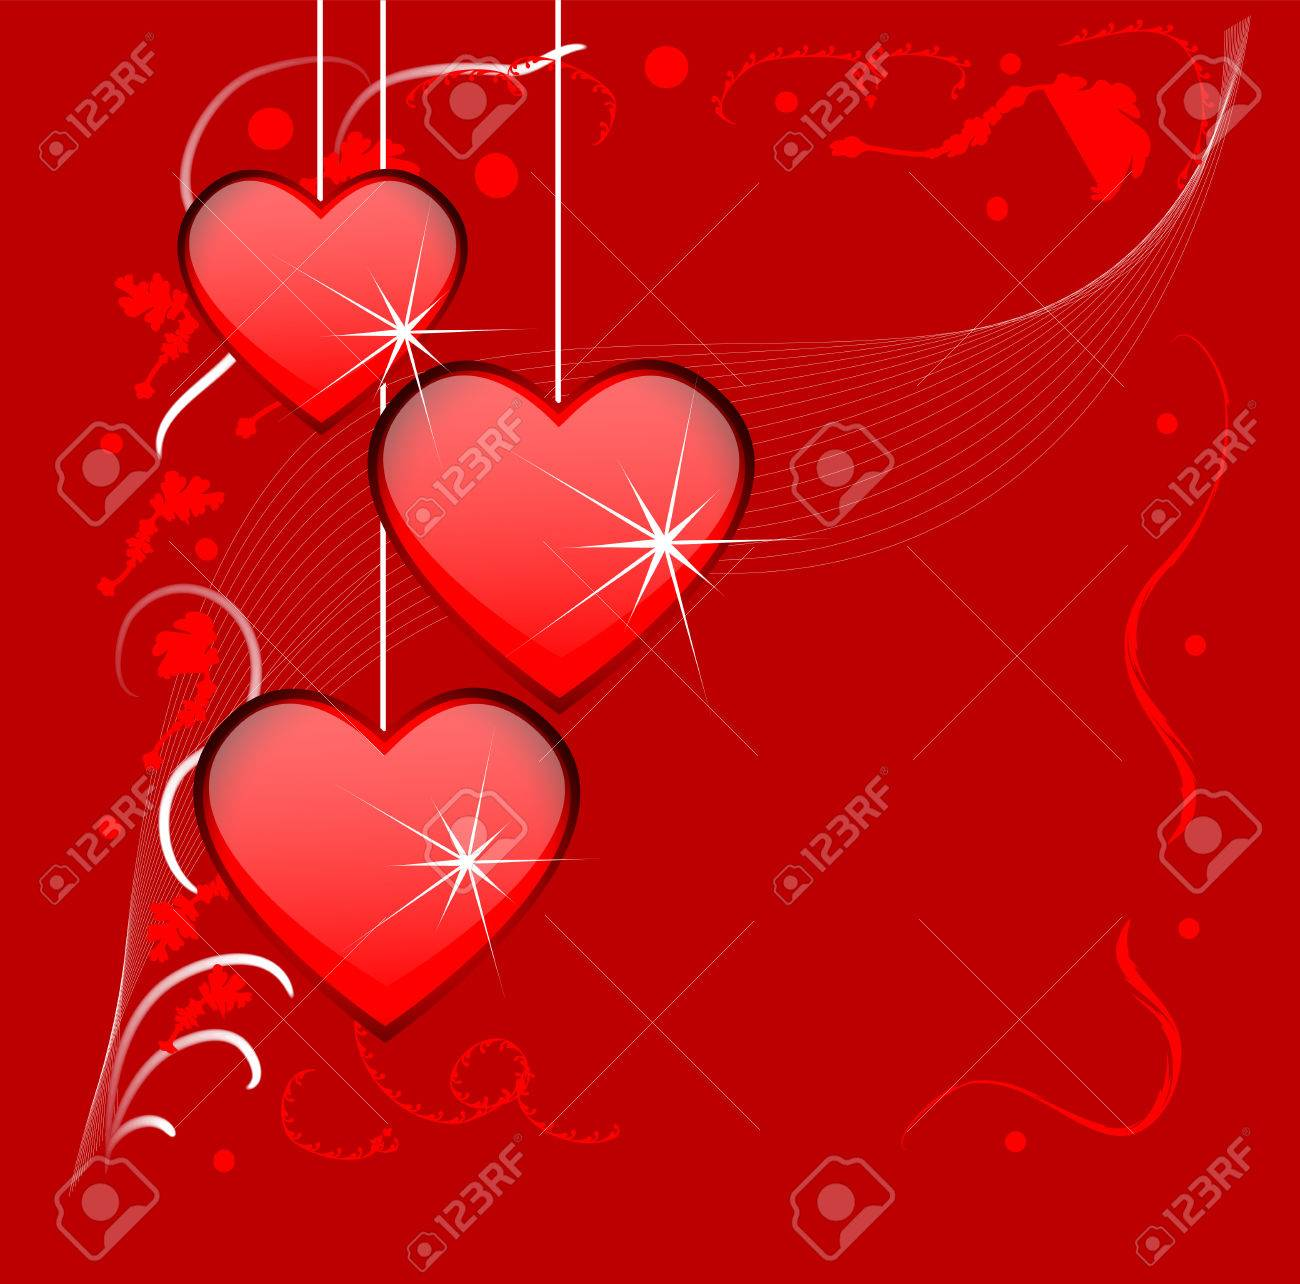 Bright red background with hearts to the day of saint valentin bright red background with hearts to the day of saint valentin stock vector 25401845 altavistaventures Image collections